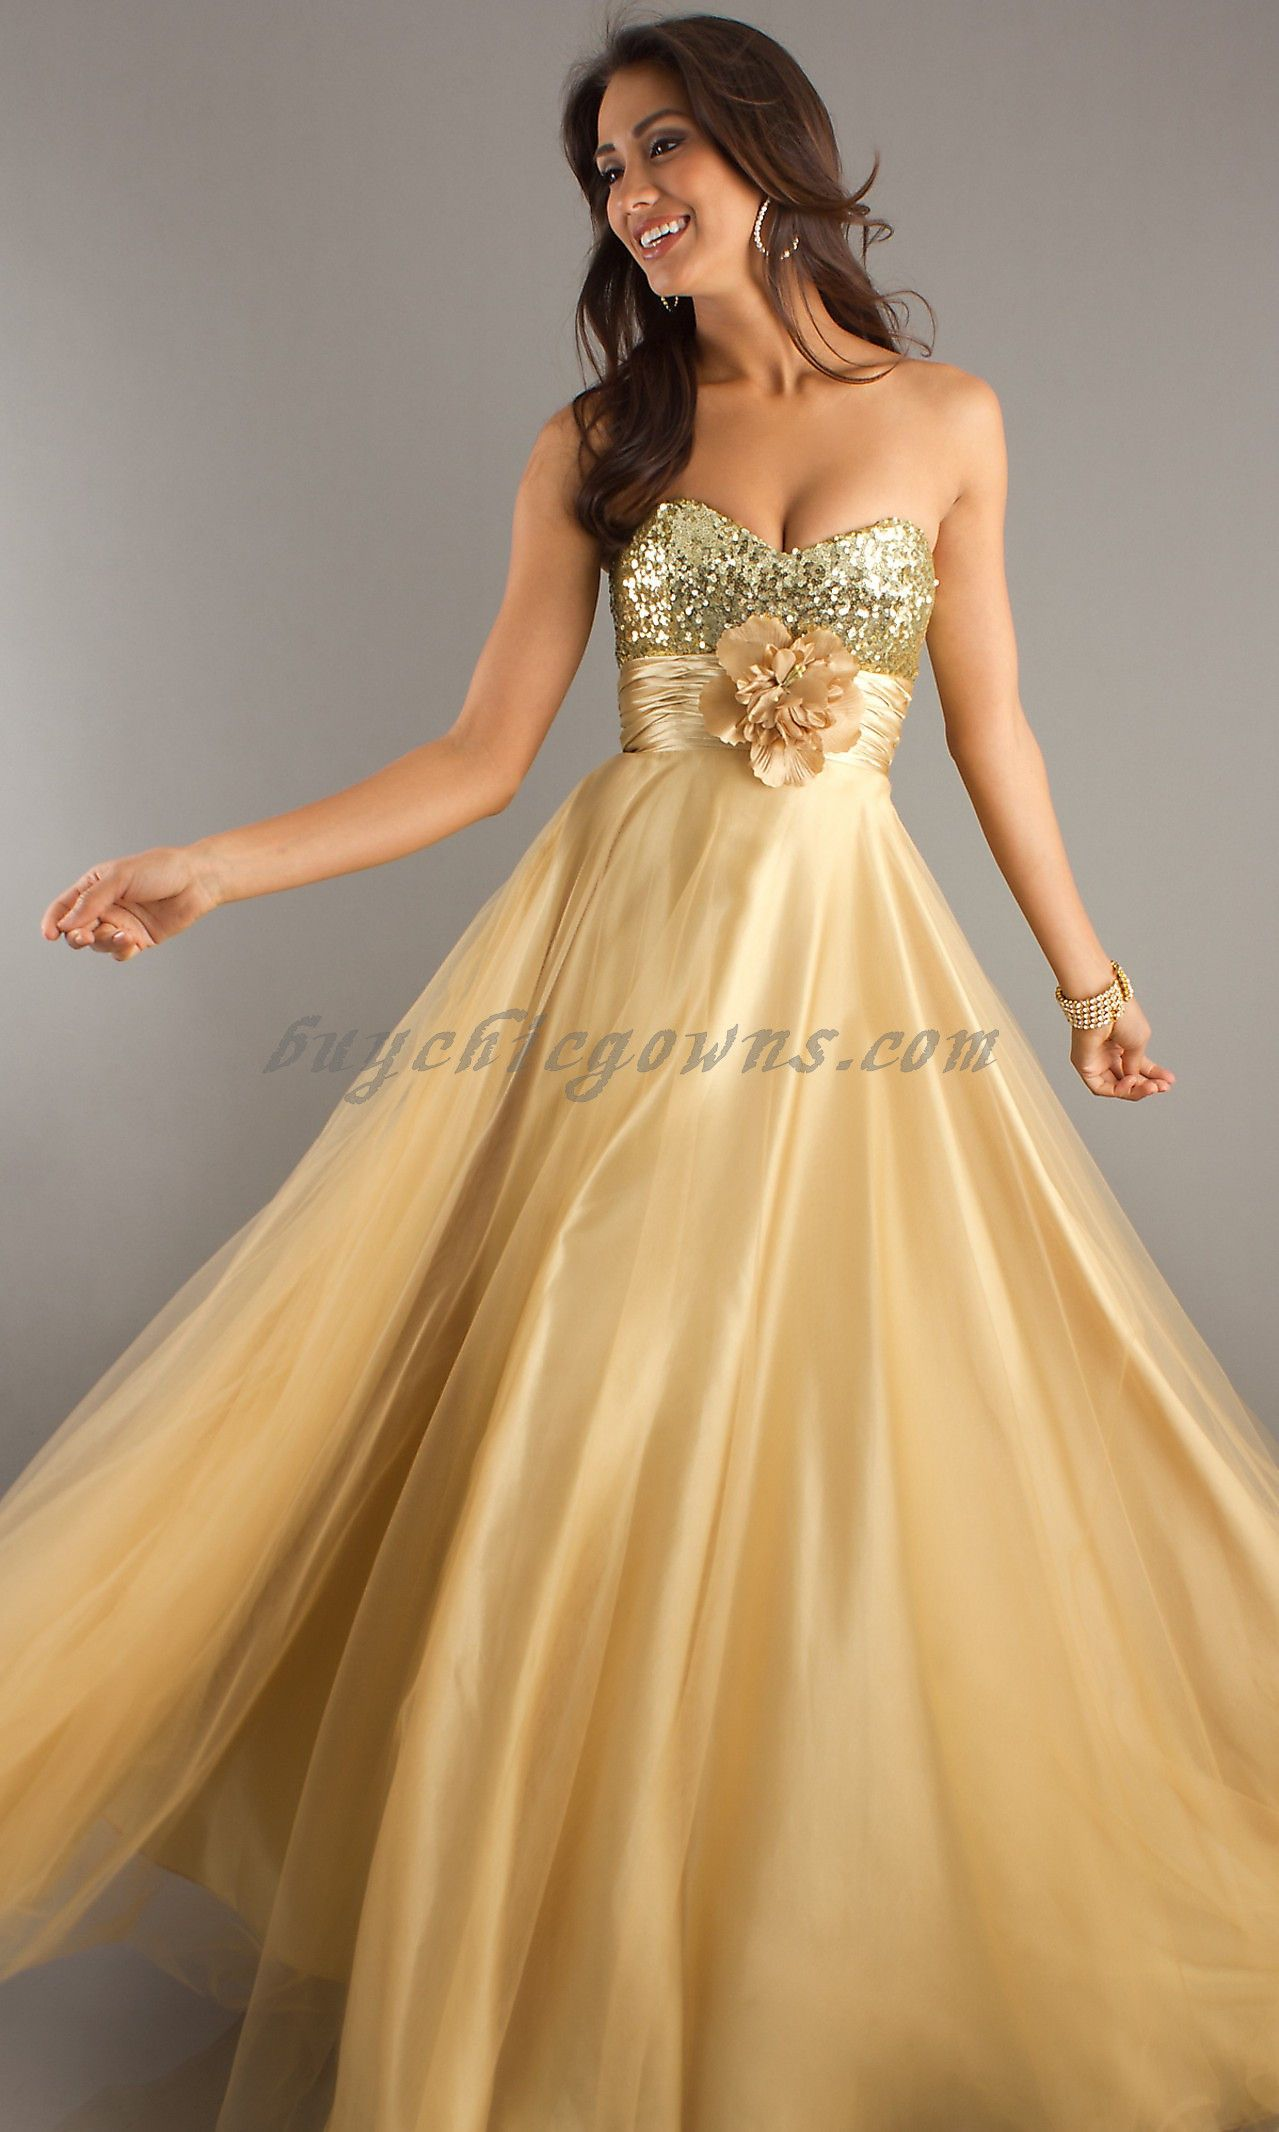 Designer evening dresses new collection long strapless sweetheart